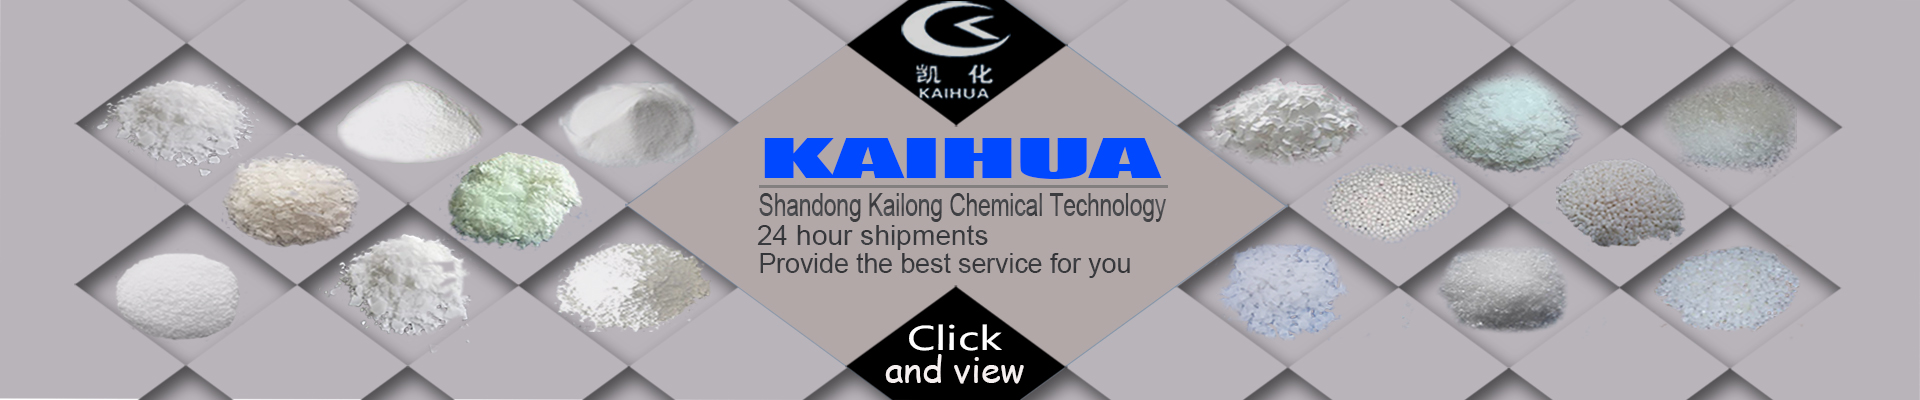 Shandong Kailong Chemical Technology Development